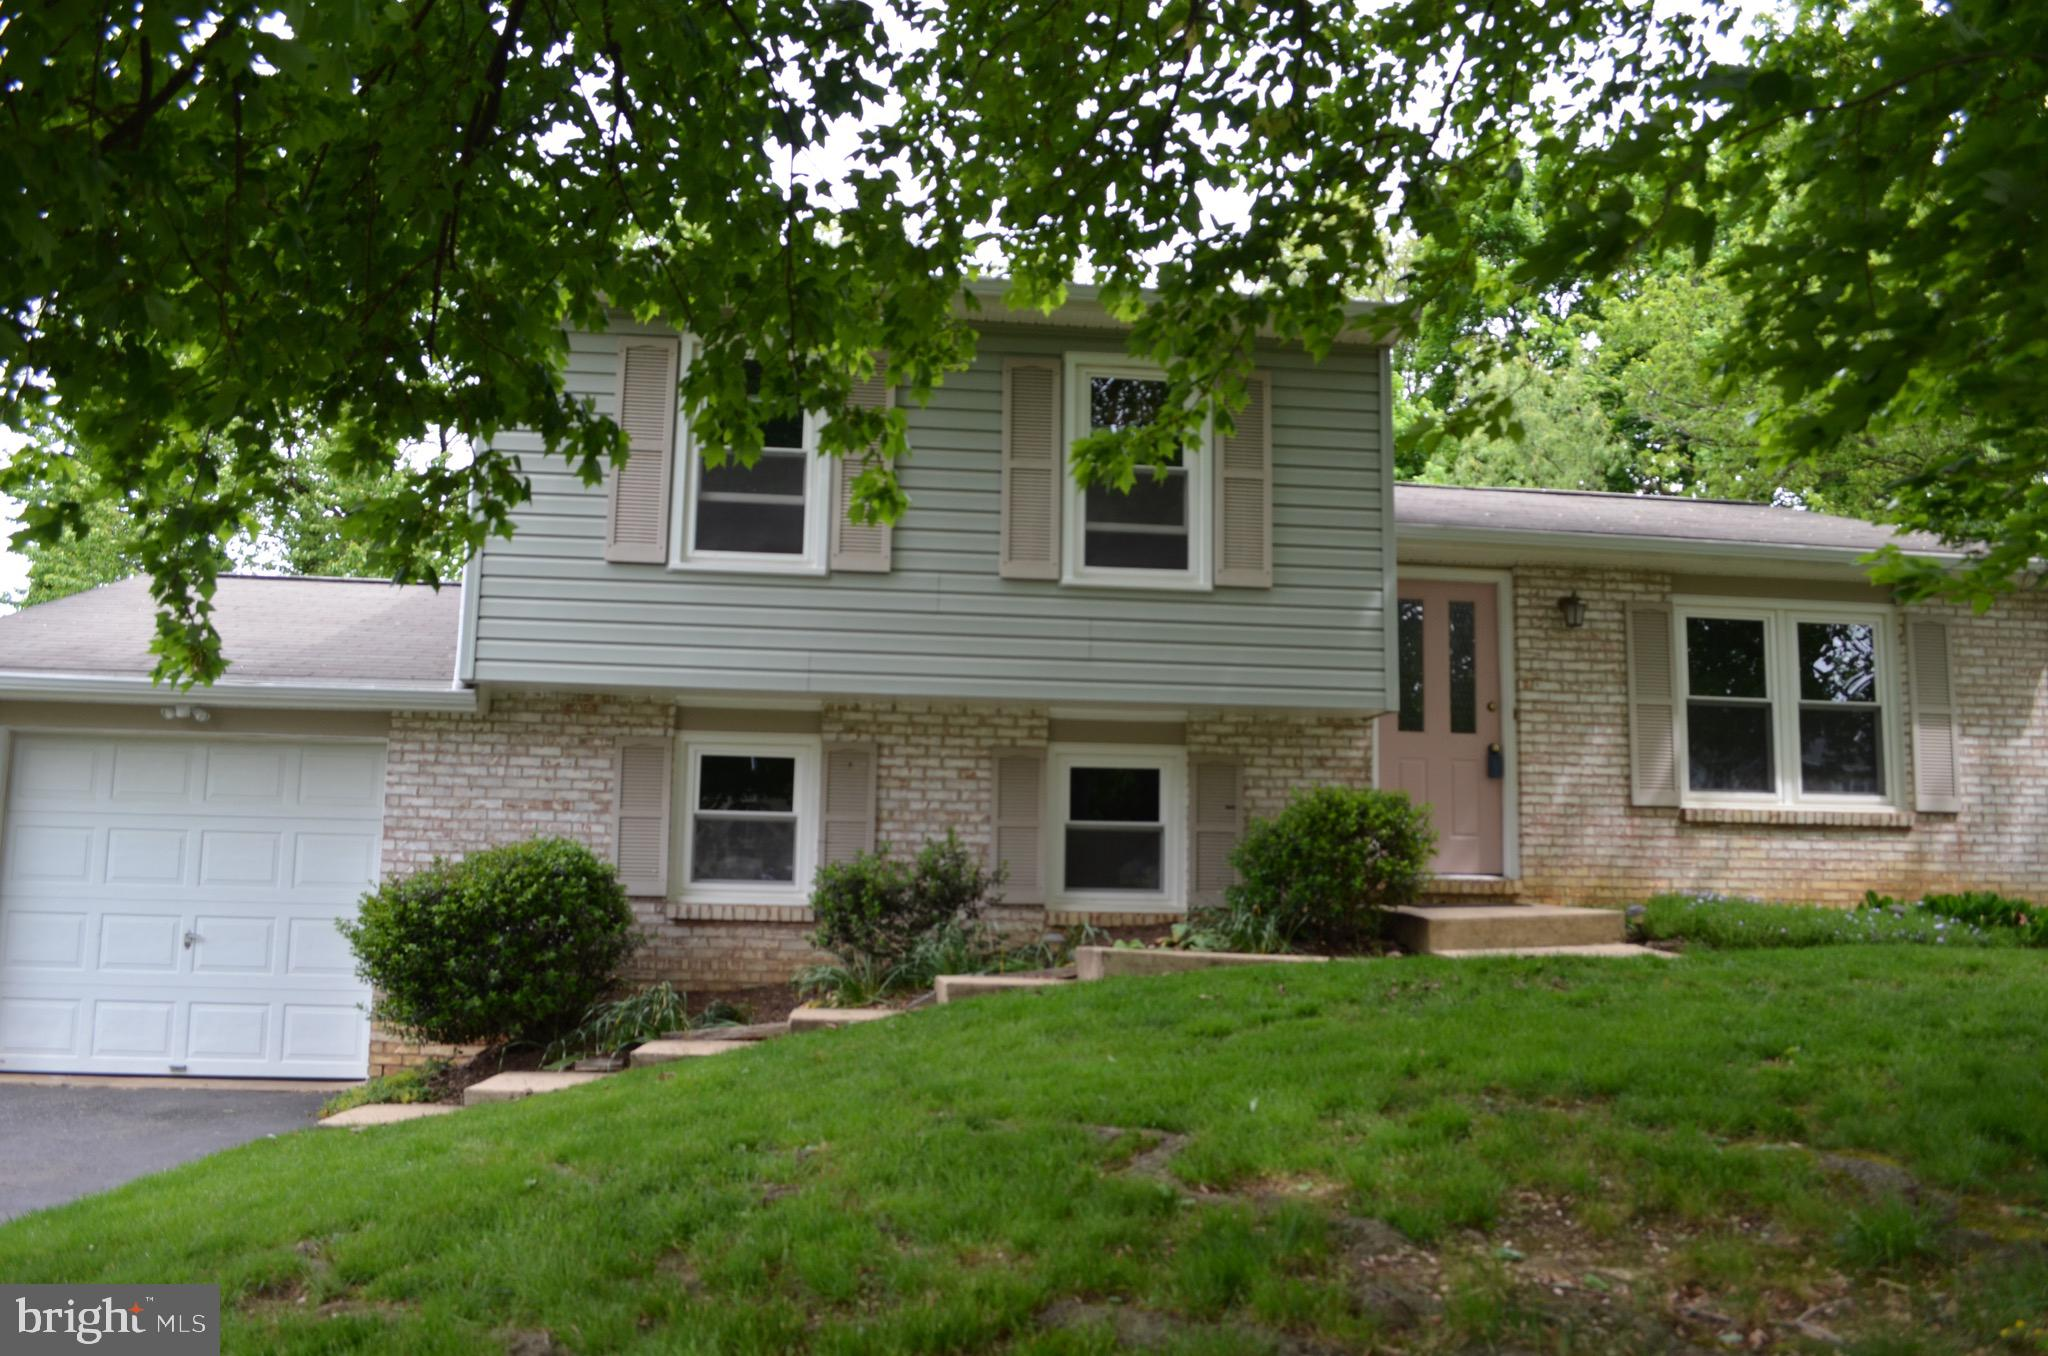 Just in time for summer with its spacious backyard in this freshly painted, split level home in the Four Seasons neighborhood of  Manheim Township. High efficiency windows installed in 2008 along with newer siding and new water heater in 2019 along with updated appliances over the years. Extra seating at the breakfast bar in kitchen with access to the open backyard. Finished lower level boasts a family room, half bath or office/4th bedroom. Oversized, attached 1 car garage with room for extra storage.